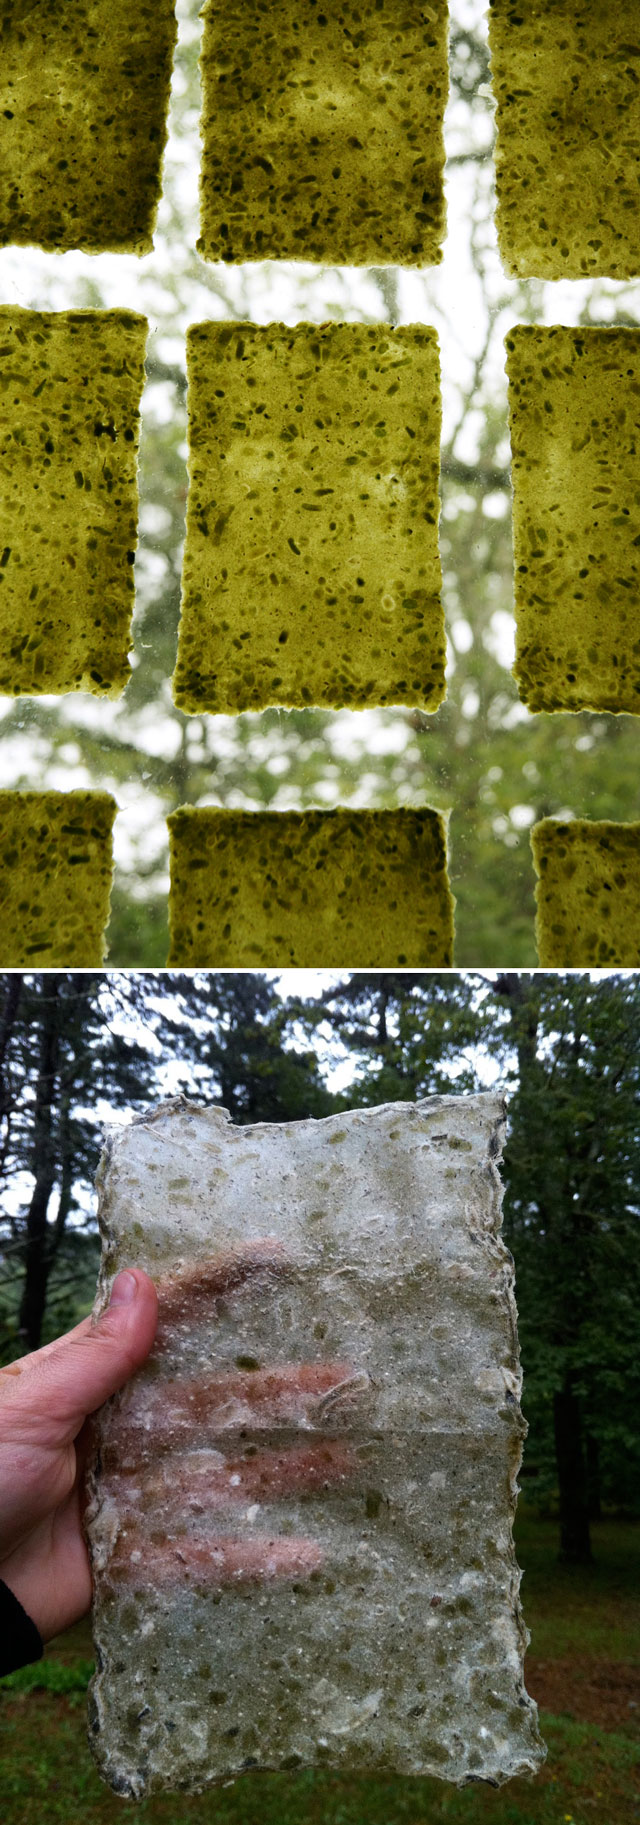 handmade paper from plants